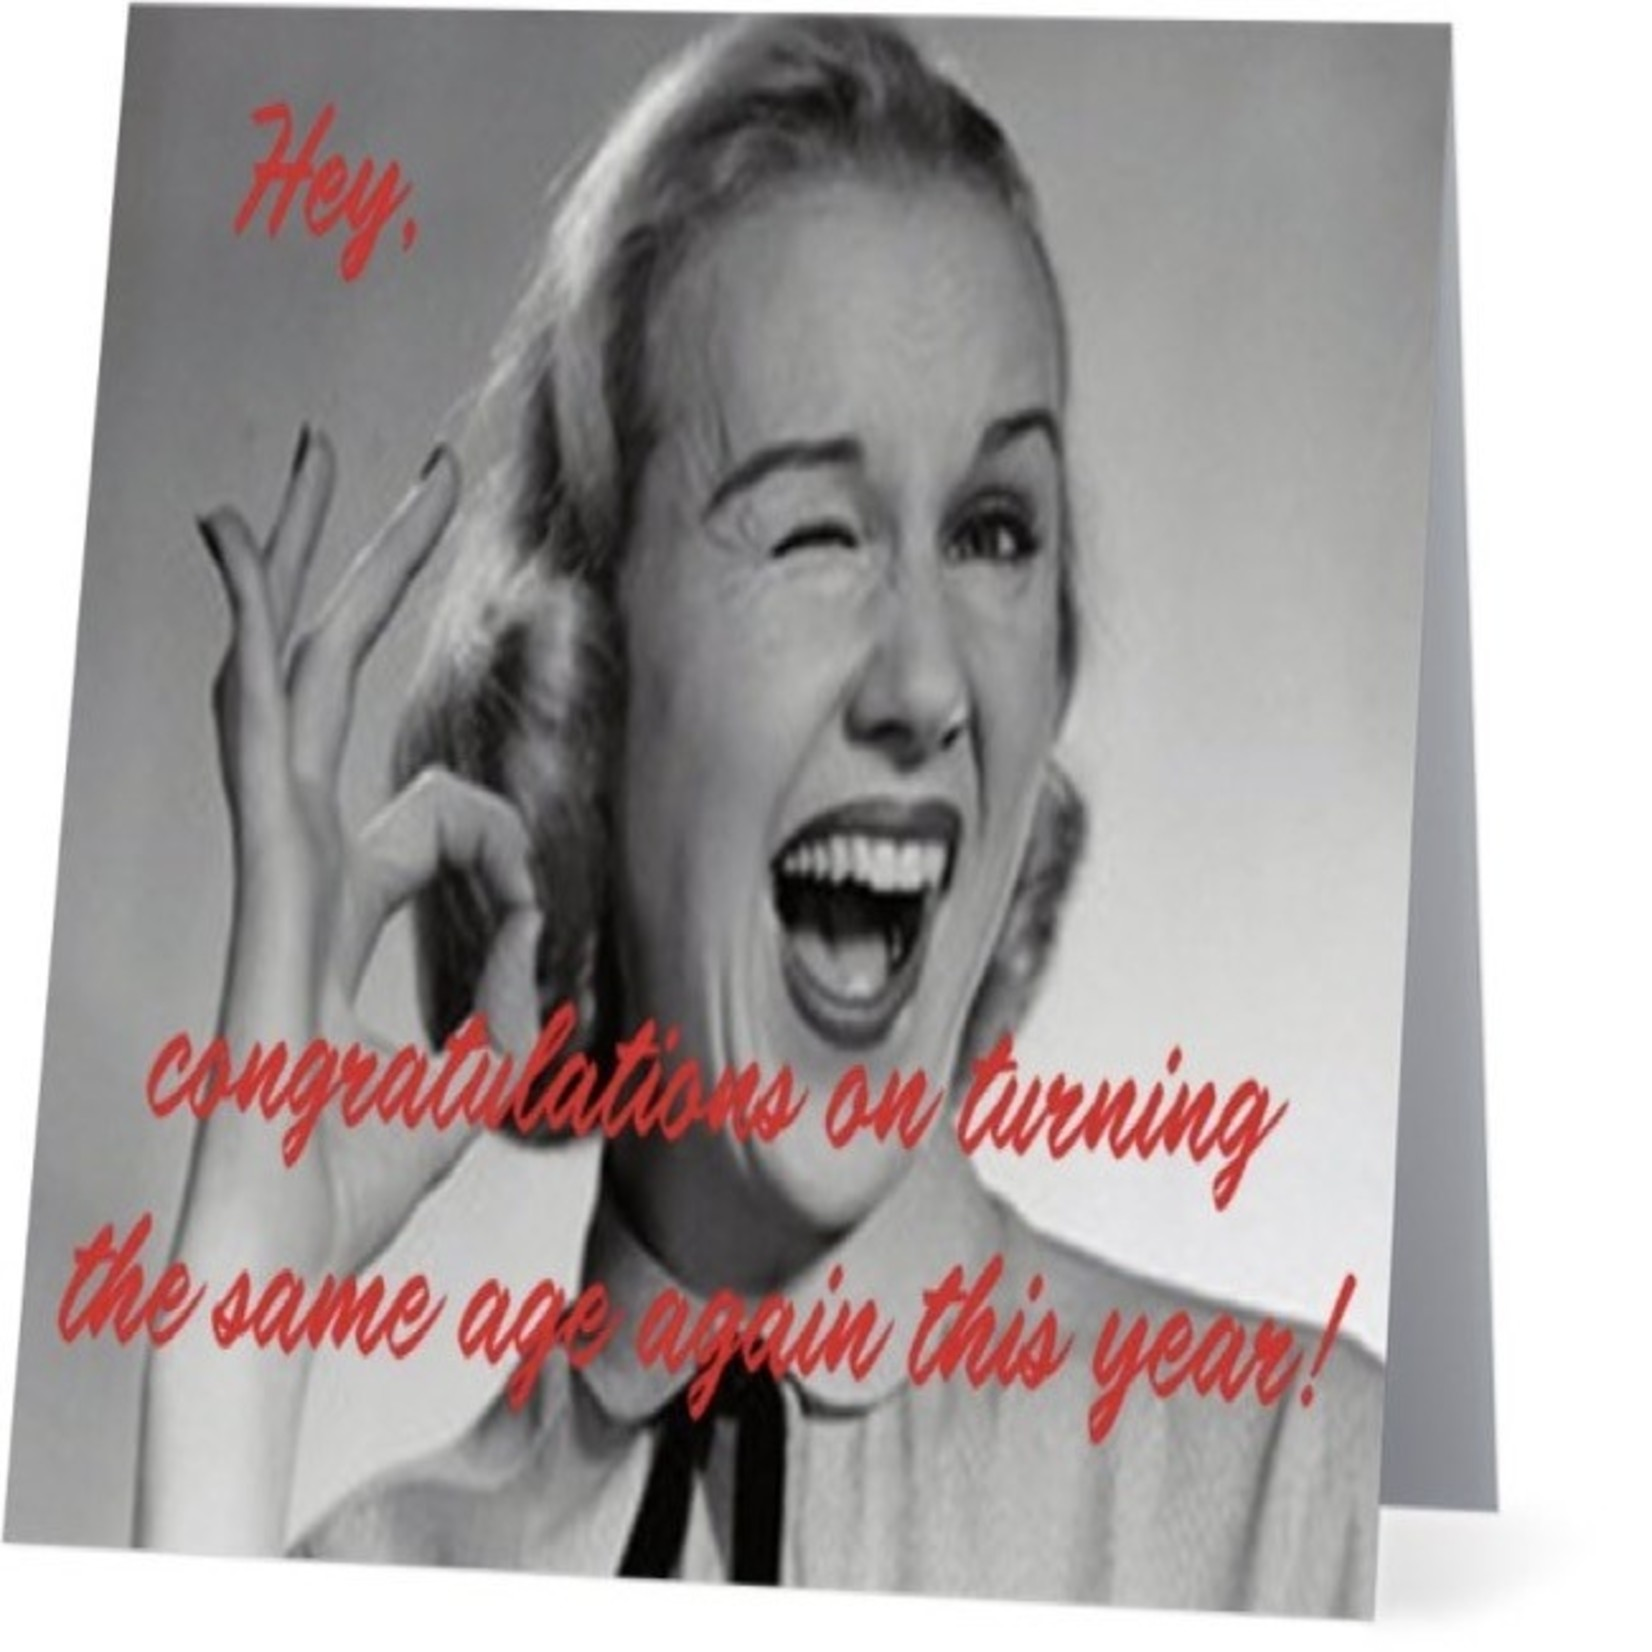 Bad Annie's Card #014 - Congrats On Turning The Same Age